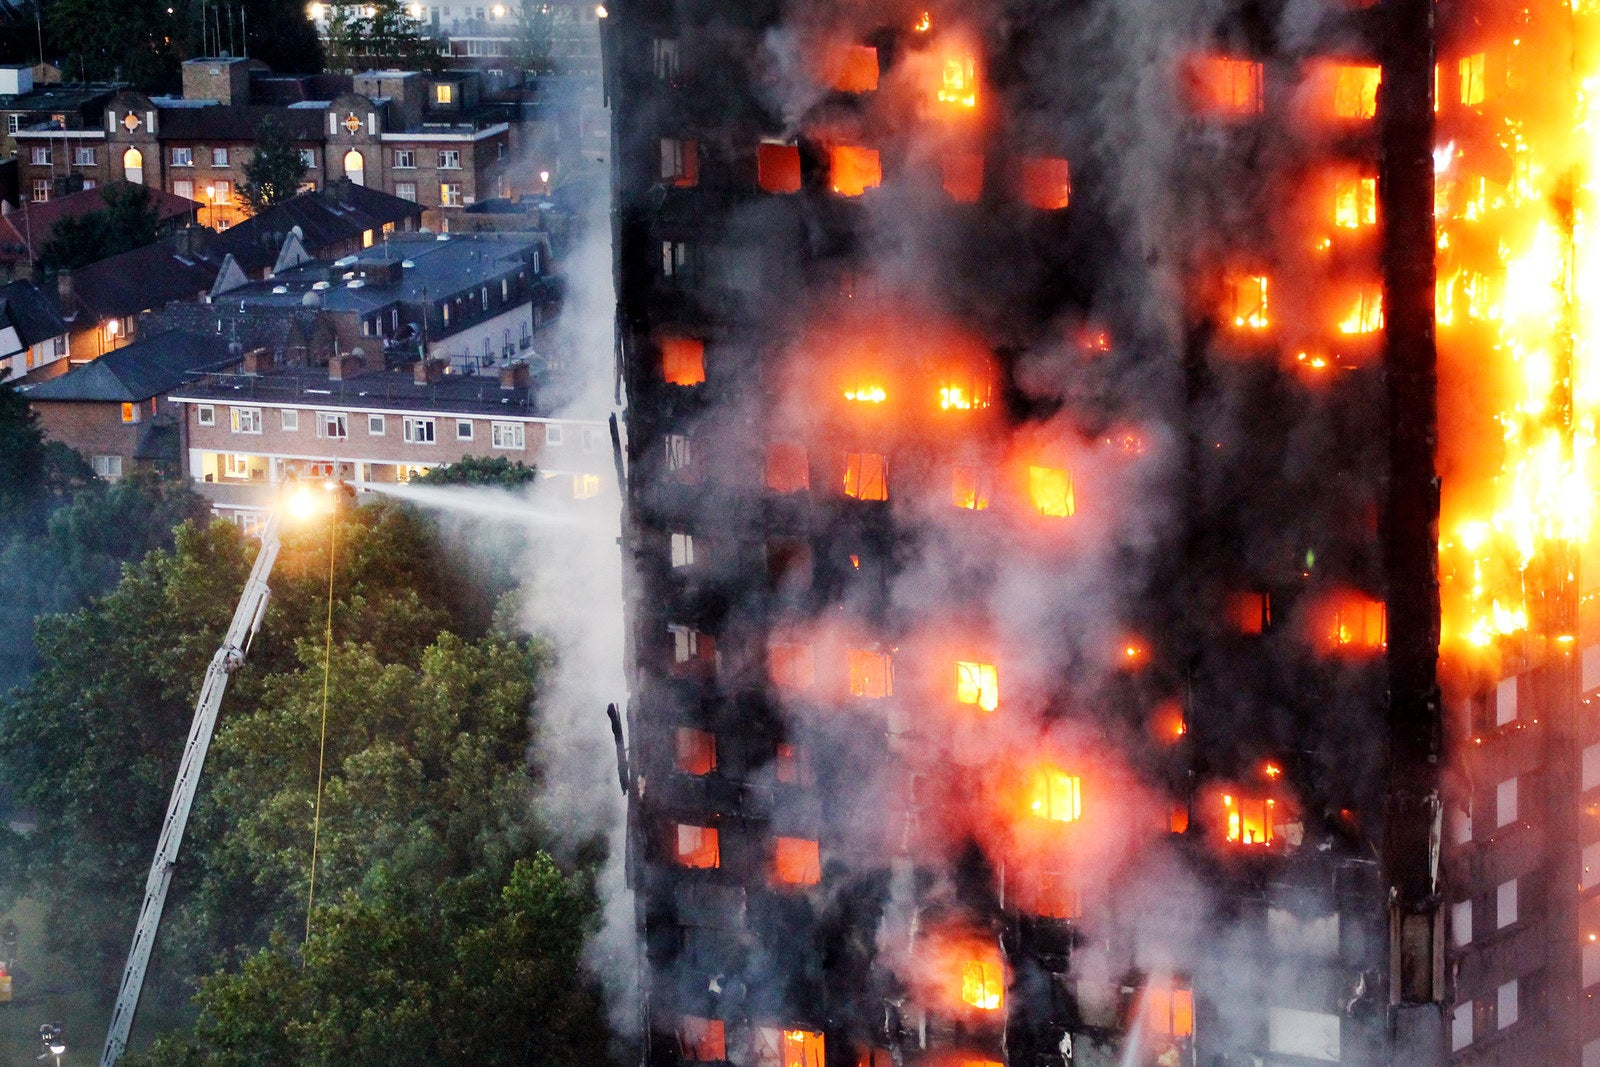 As dawn breaks, flames continue to leap from every window as over 200 firefighters from across London fought to tackle a blaze at the Grenfell Tower on June 14.